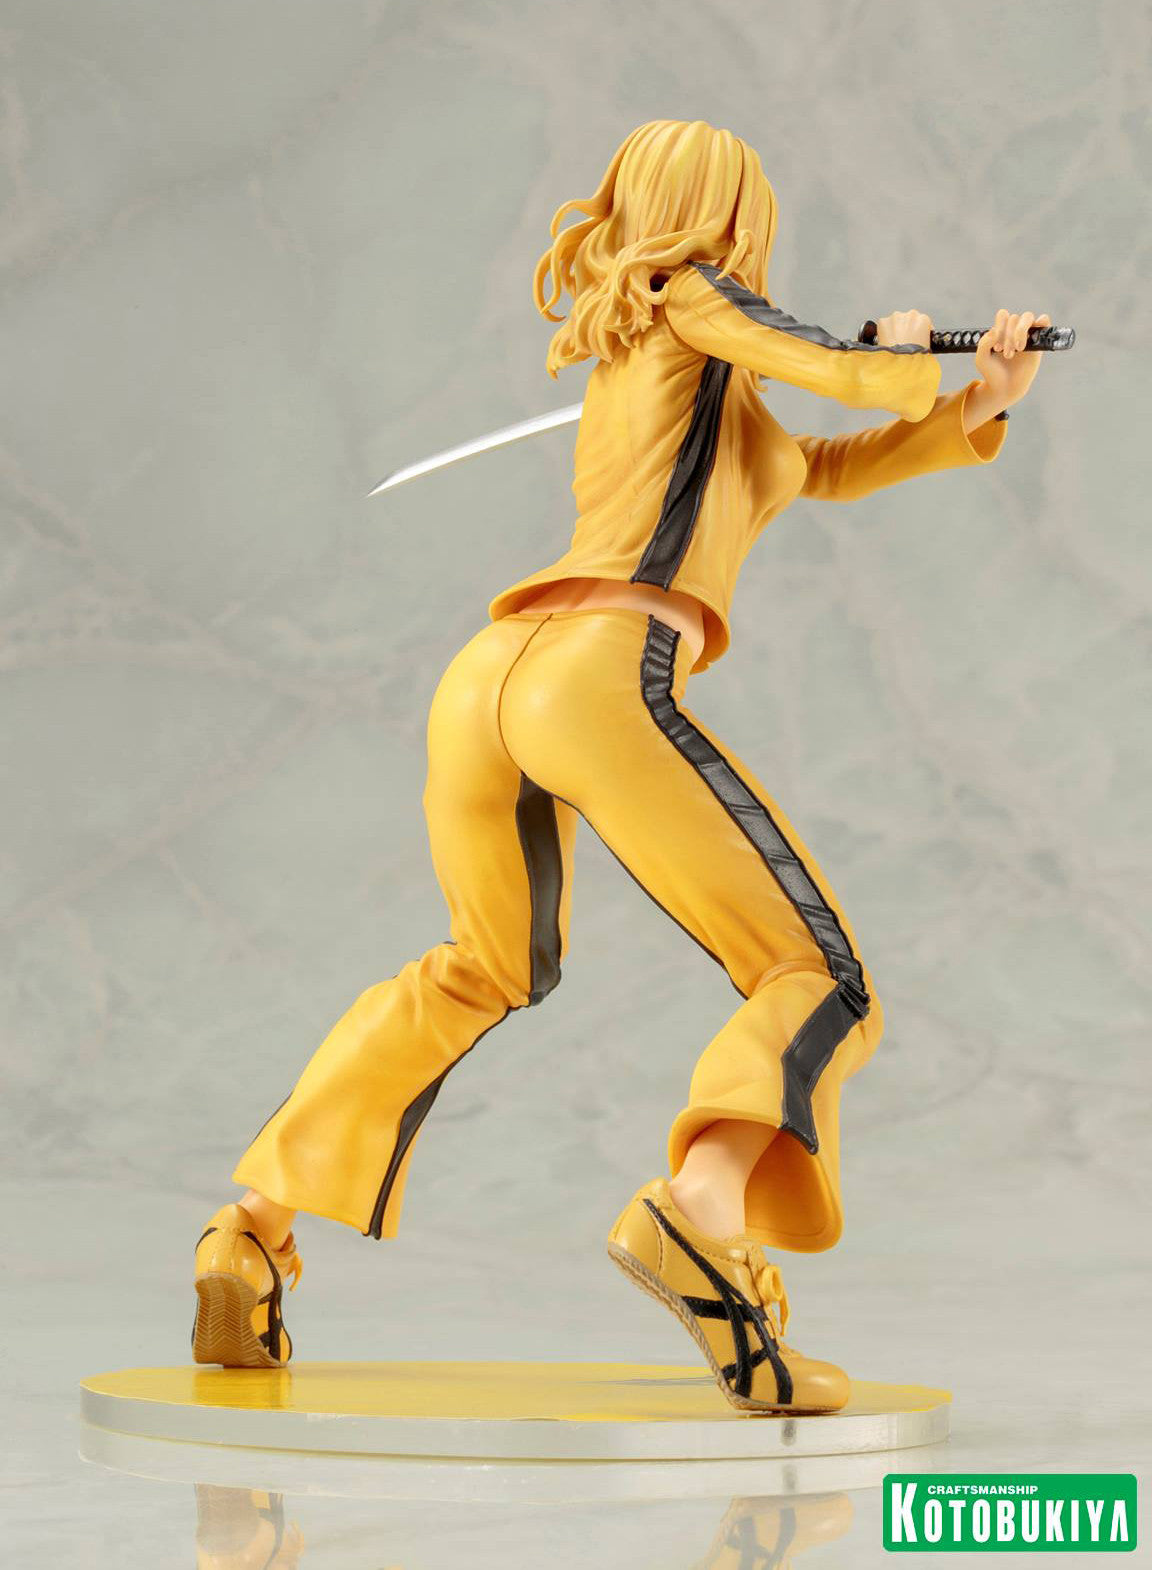 Kotobukiya - Bishoujo - Kill Bill - The Bride (1/7 scale) - Marvelous Toys - 3